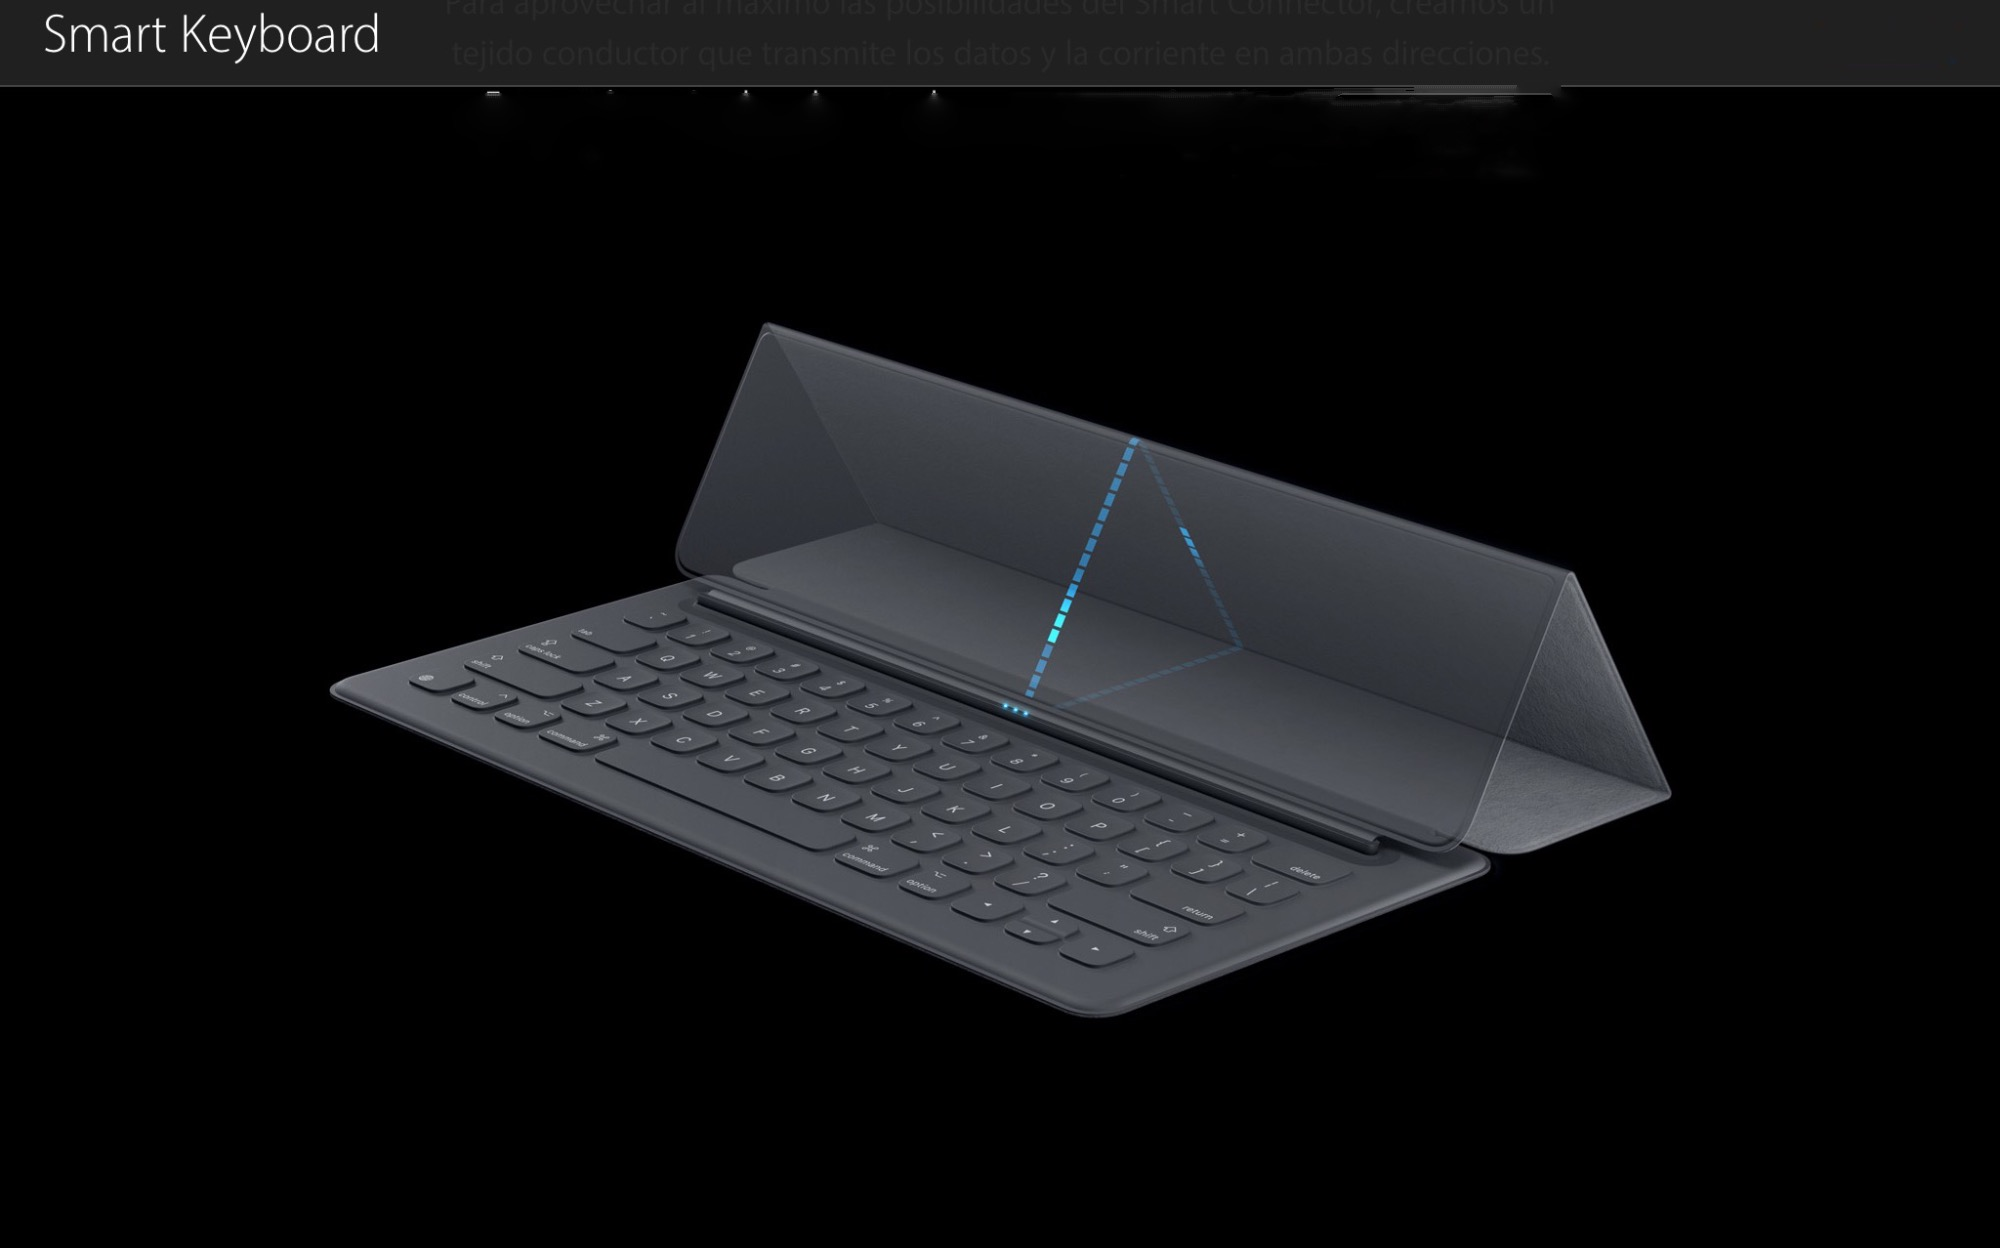 http://hablandodemanzanas.com/sites/default/files/Imagen-Apple-iPad-Pro-Smart%20Keyboard.jpg